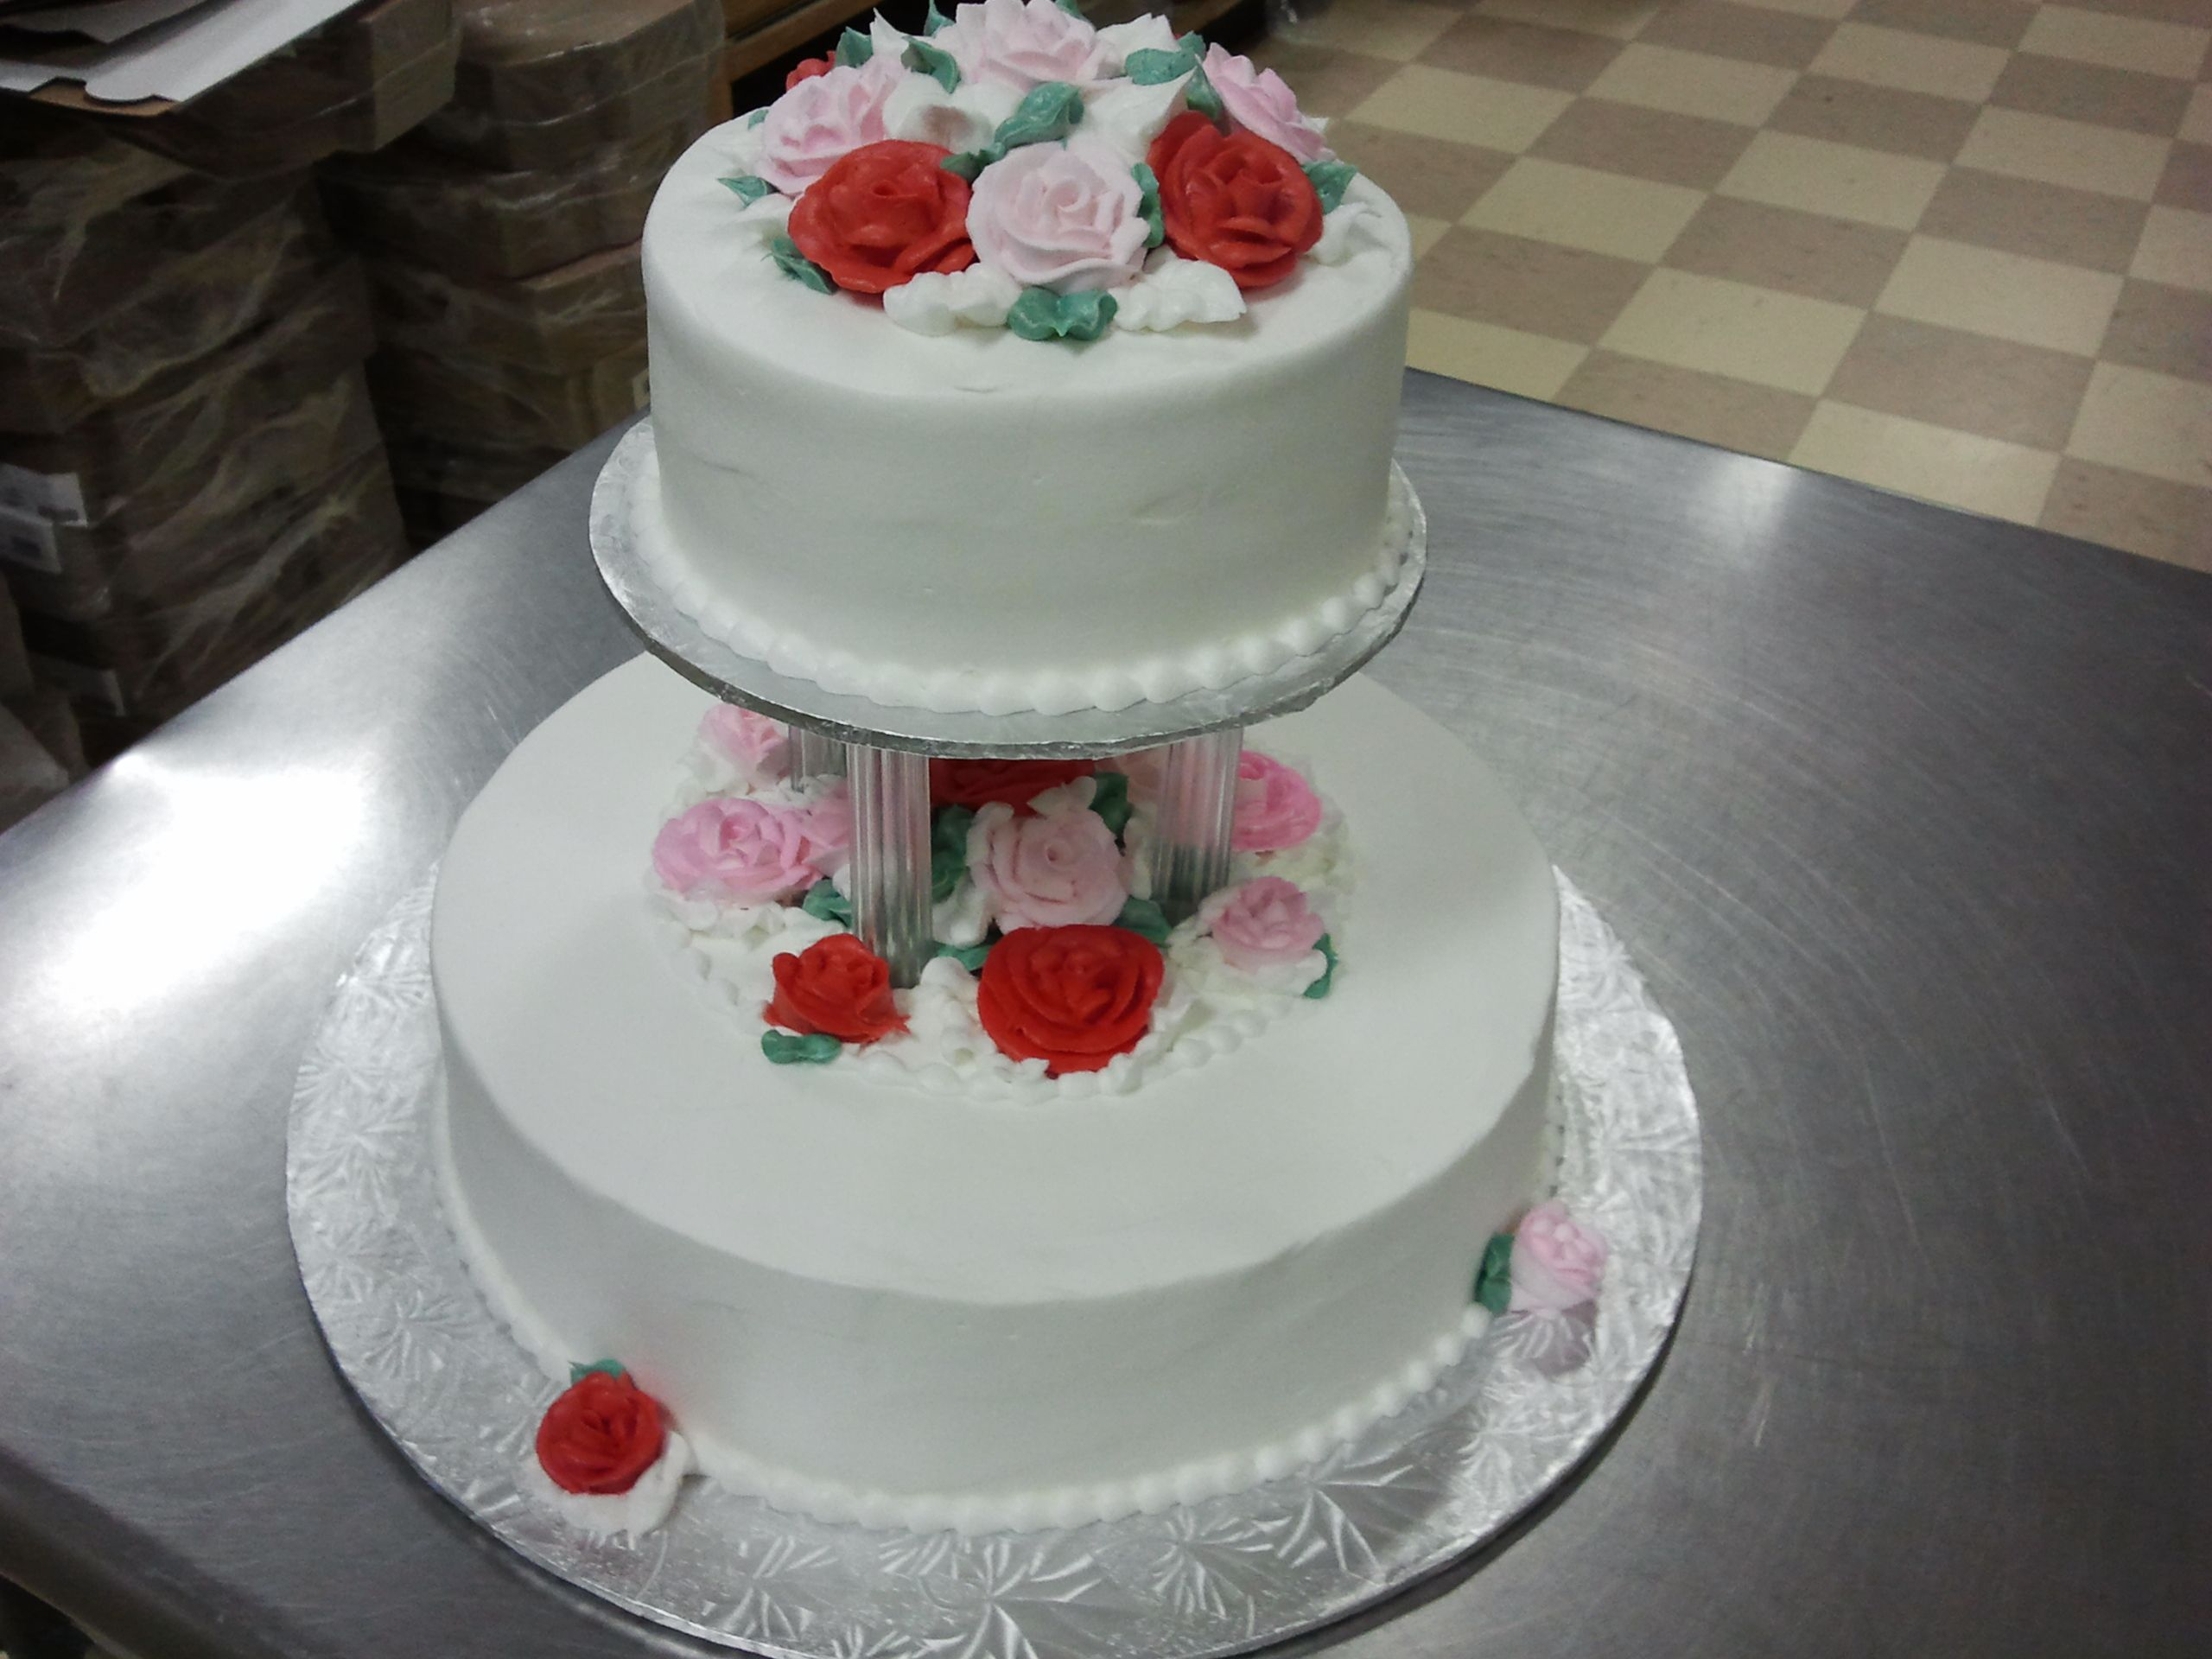 Top tier separated. Smooth buttercream with pale pink and red roses.